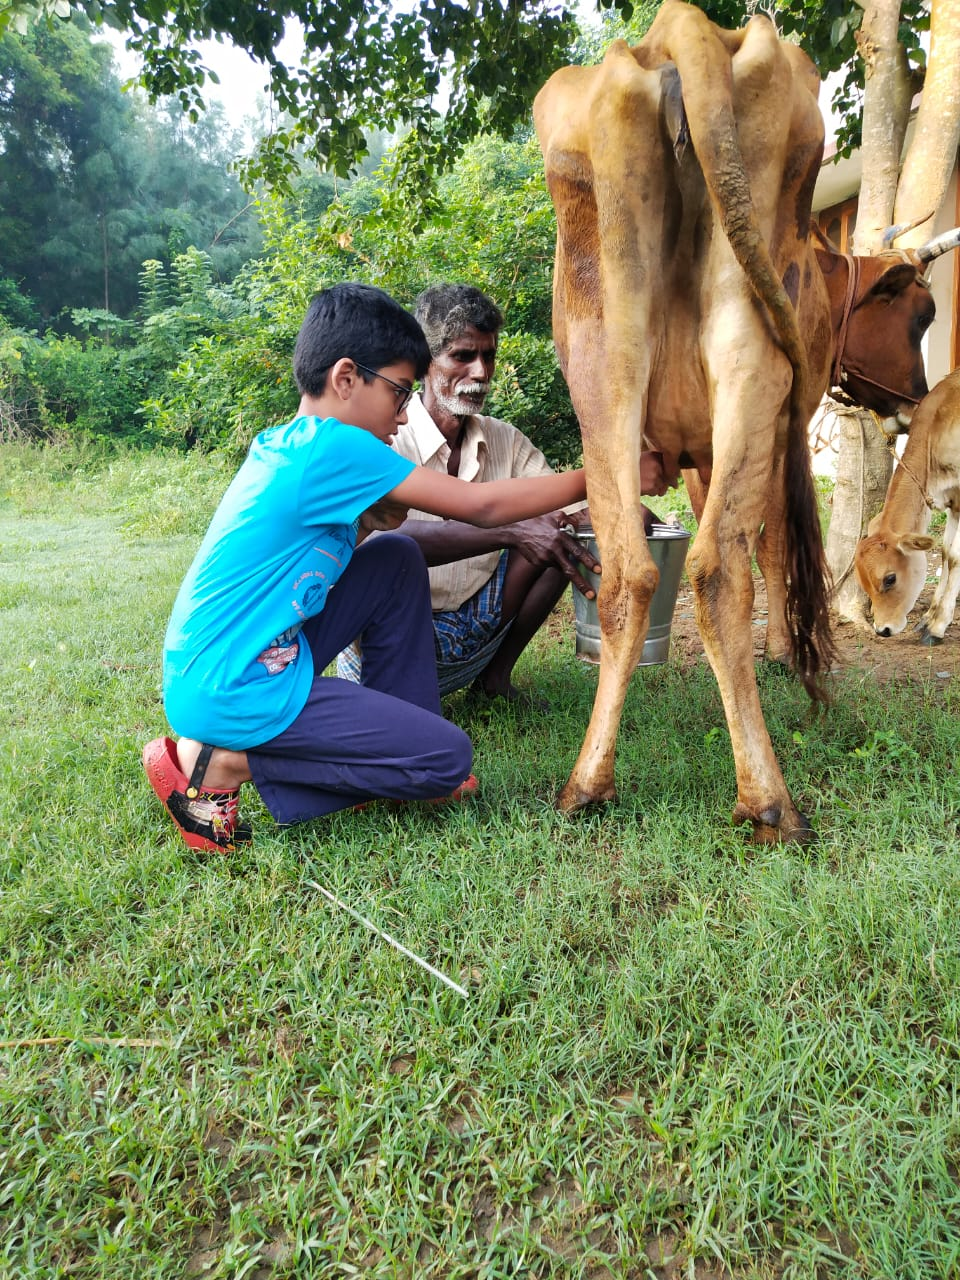 Milking Cows at the Farm